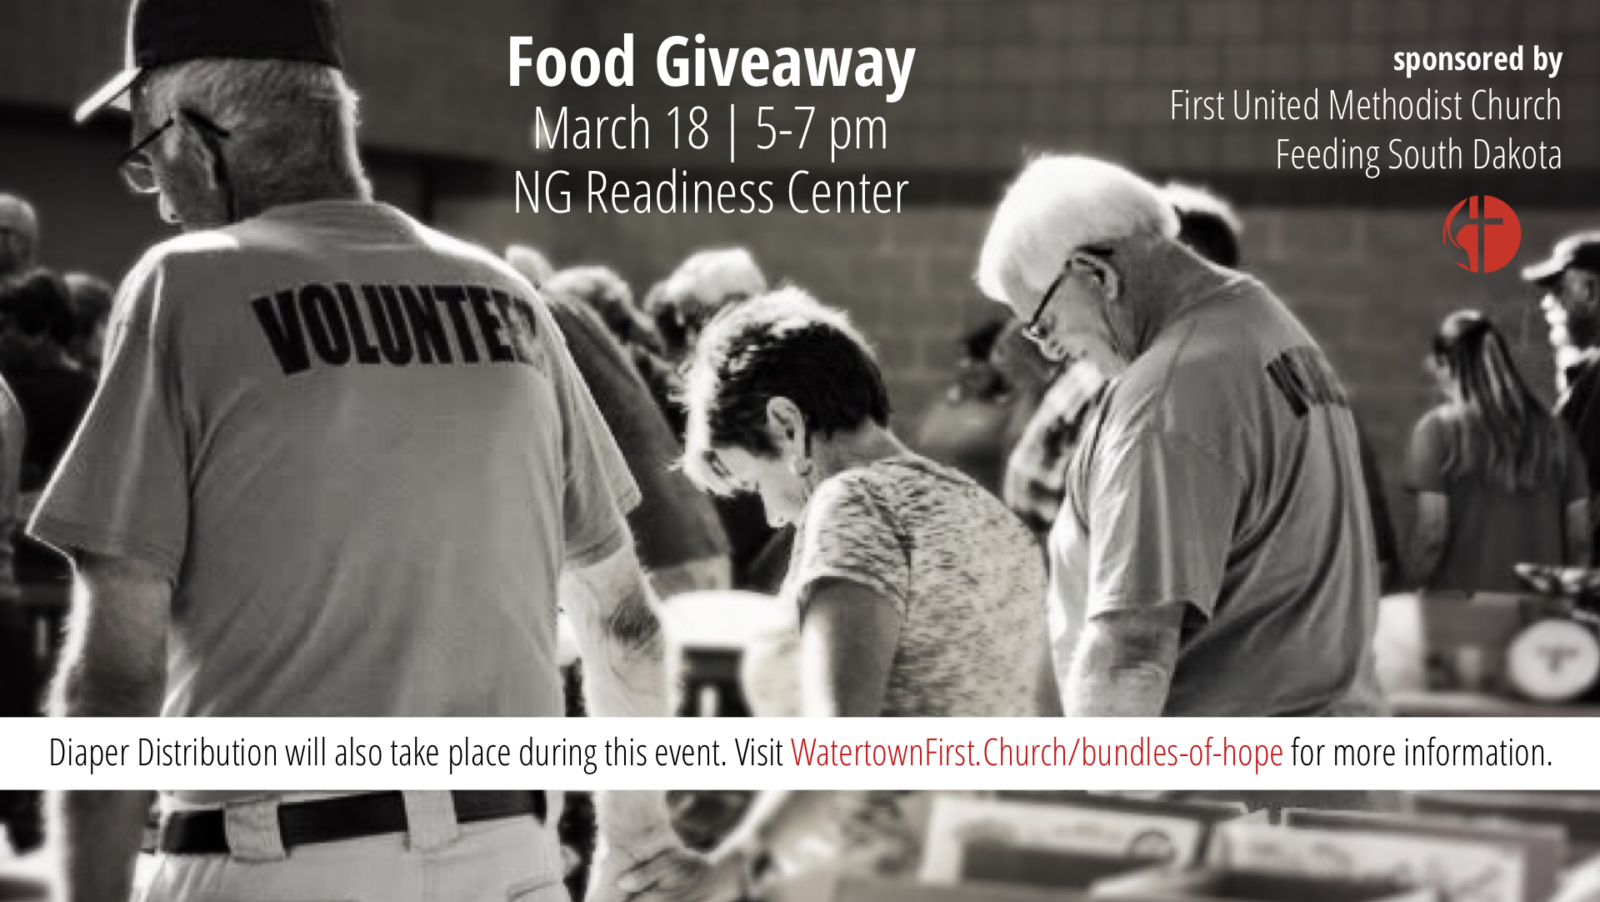 Watertown First United Methodist Church Food Giveaway and Diaper Distribution